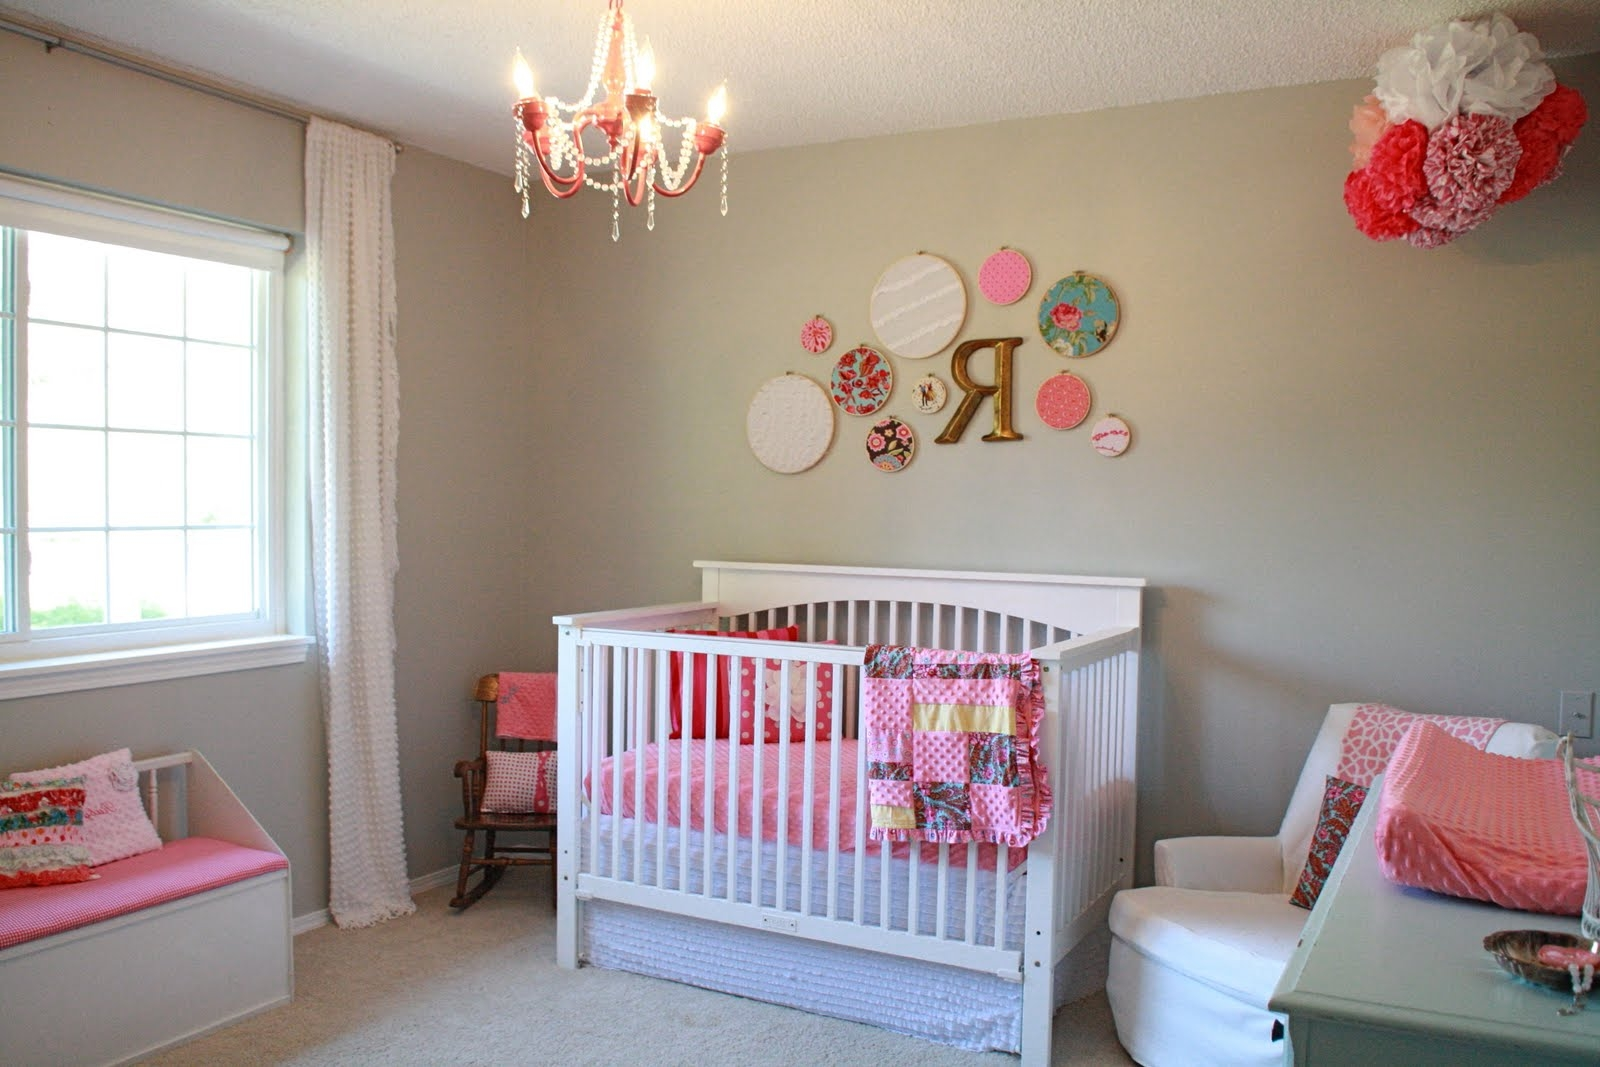 Baby girl room decor ideas for Girls bedroom decor ideas